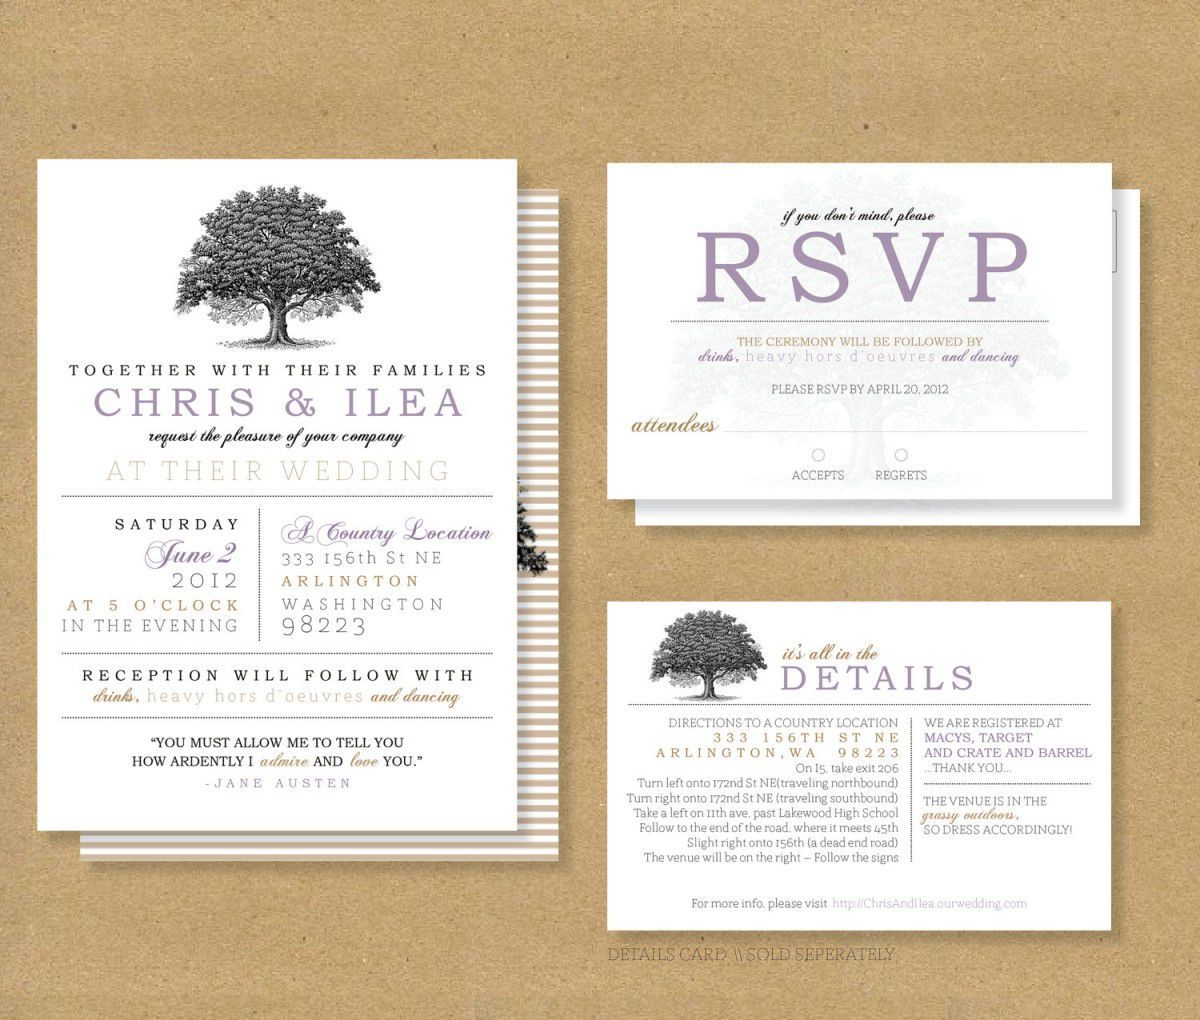 invitation-cards-printing-in-hyderabad  Wedding invitations rsvp